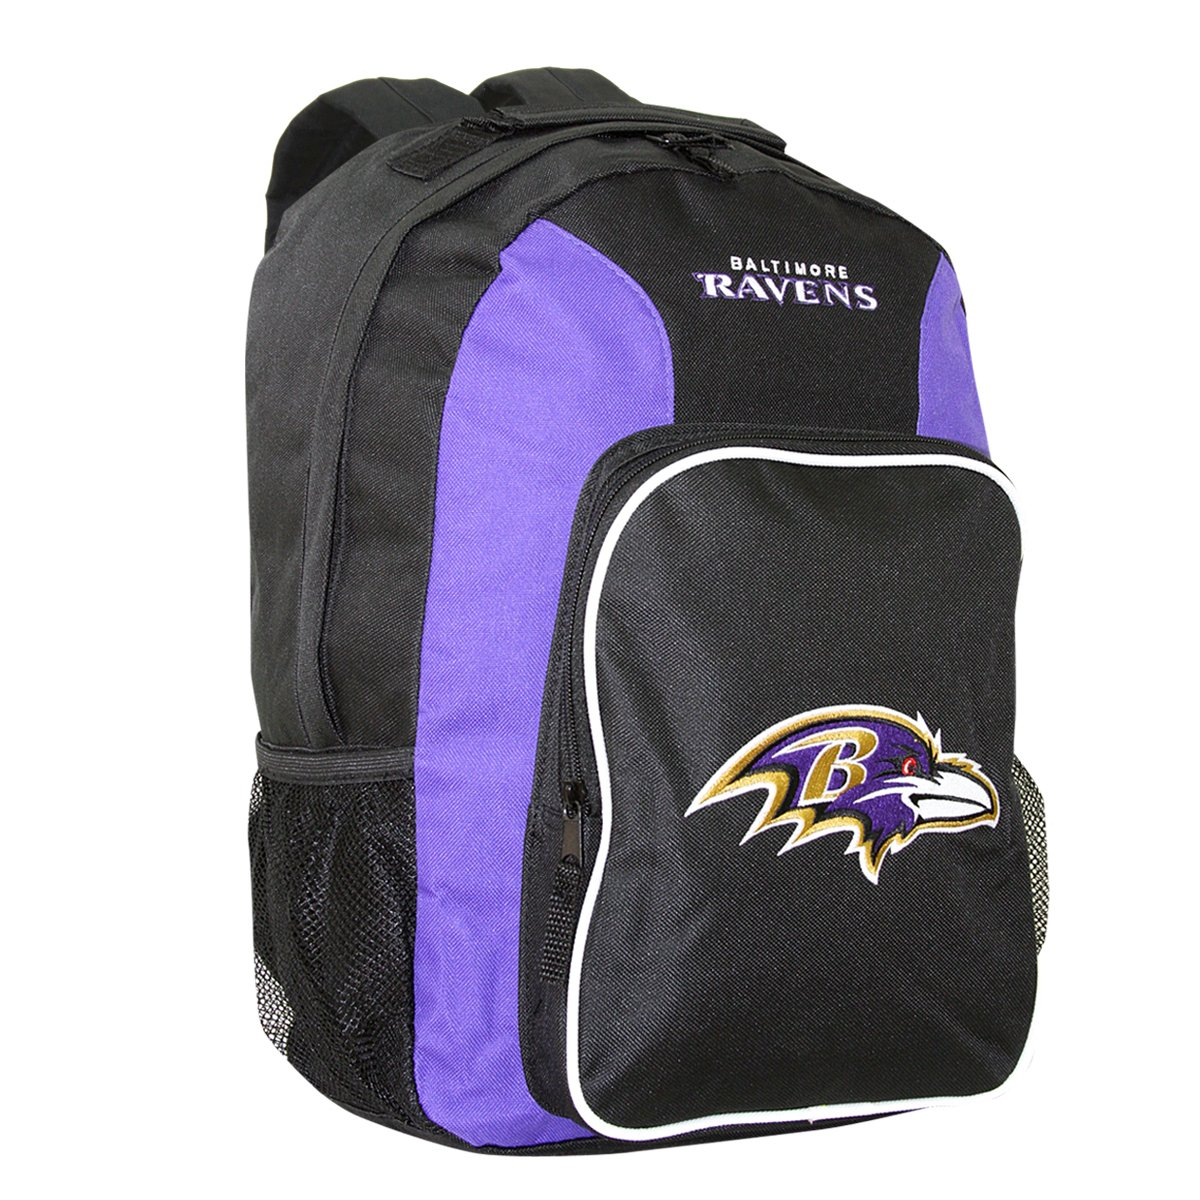 Baltimore Ravens at Sears.com